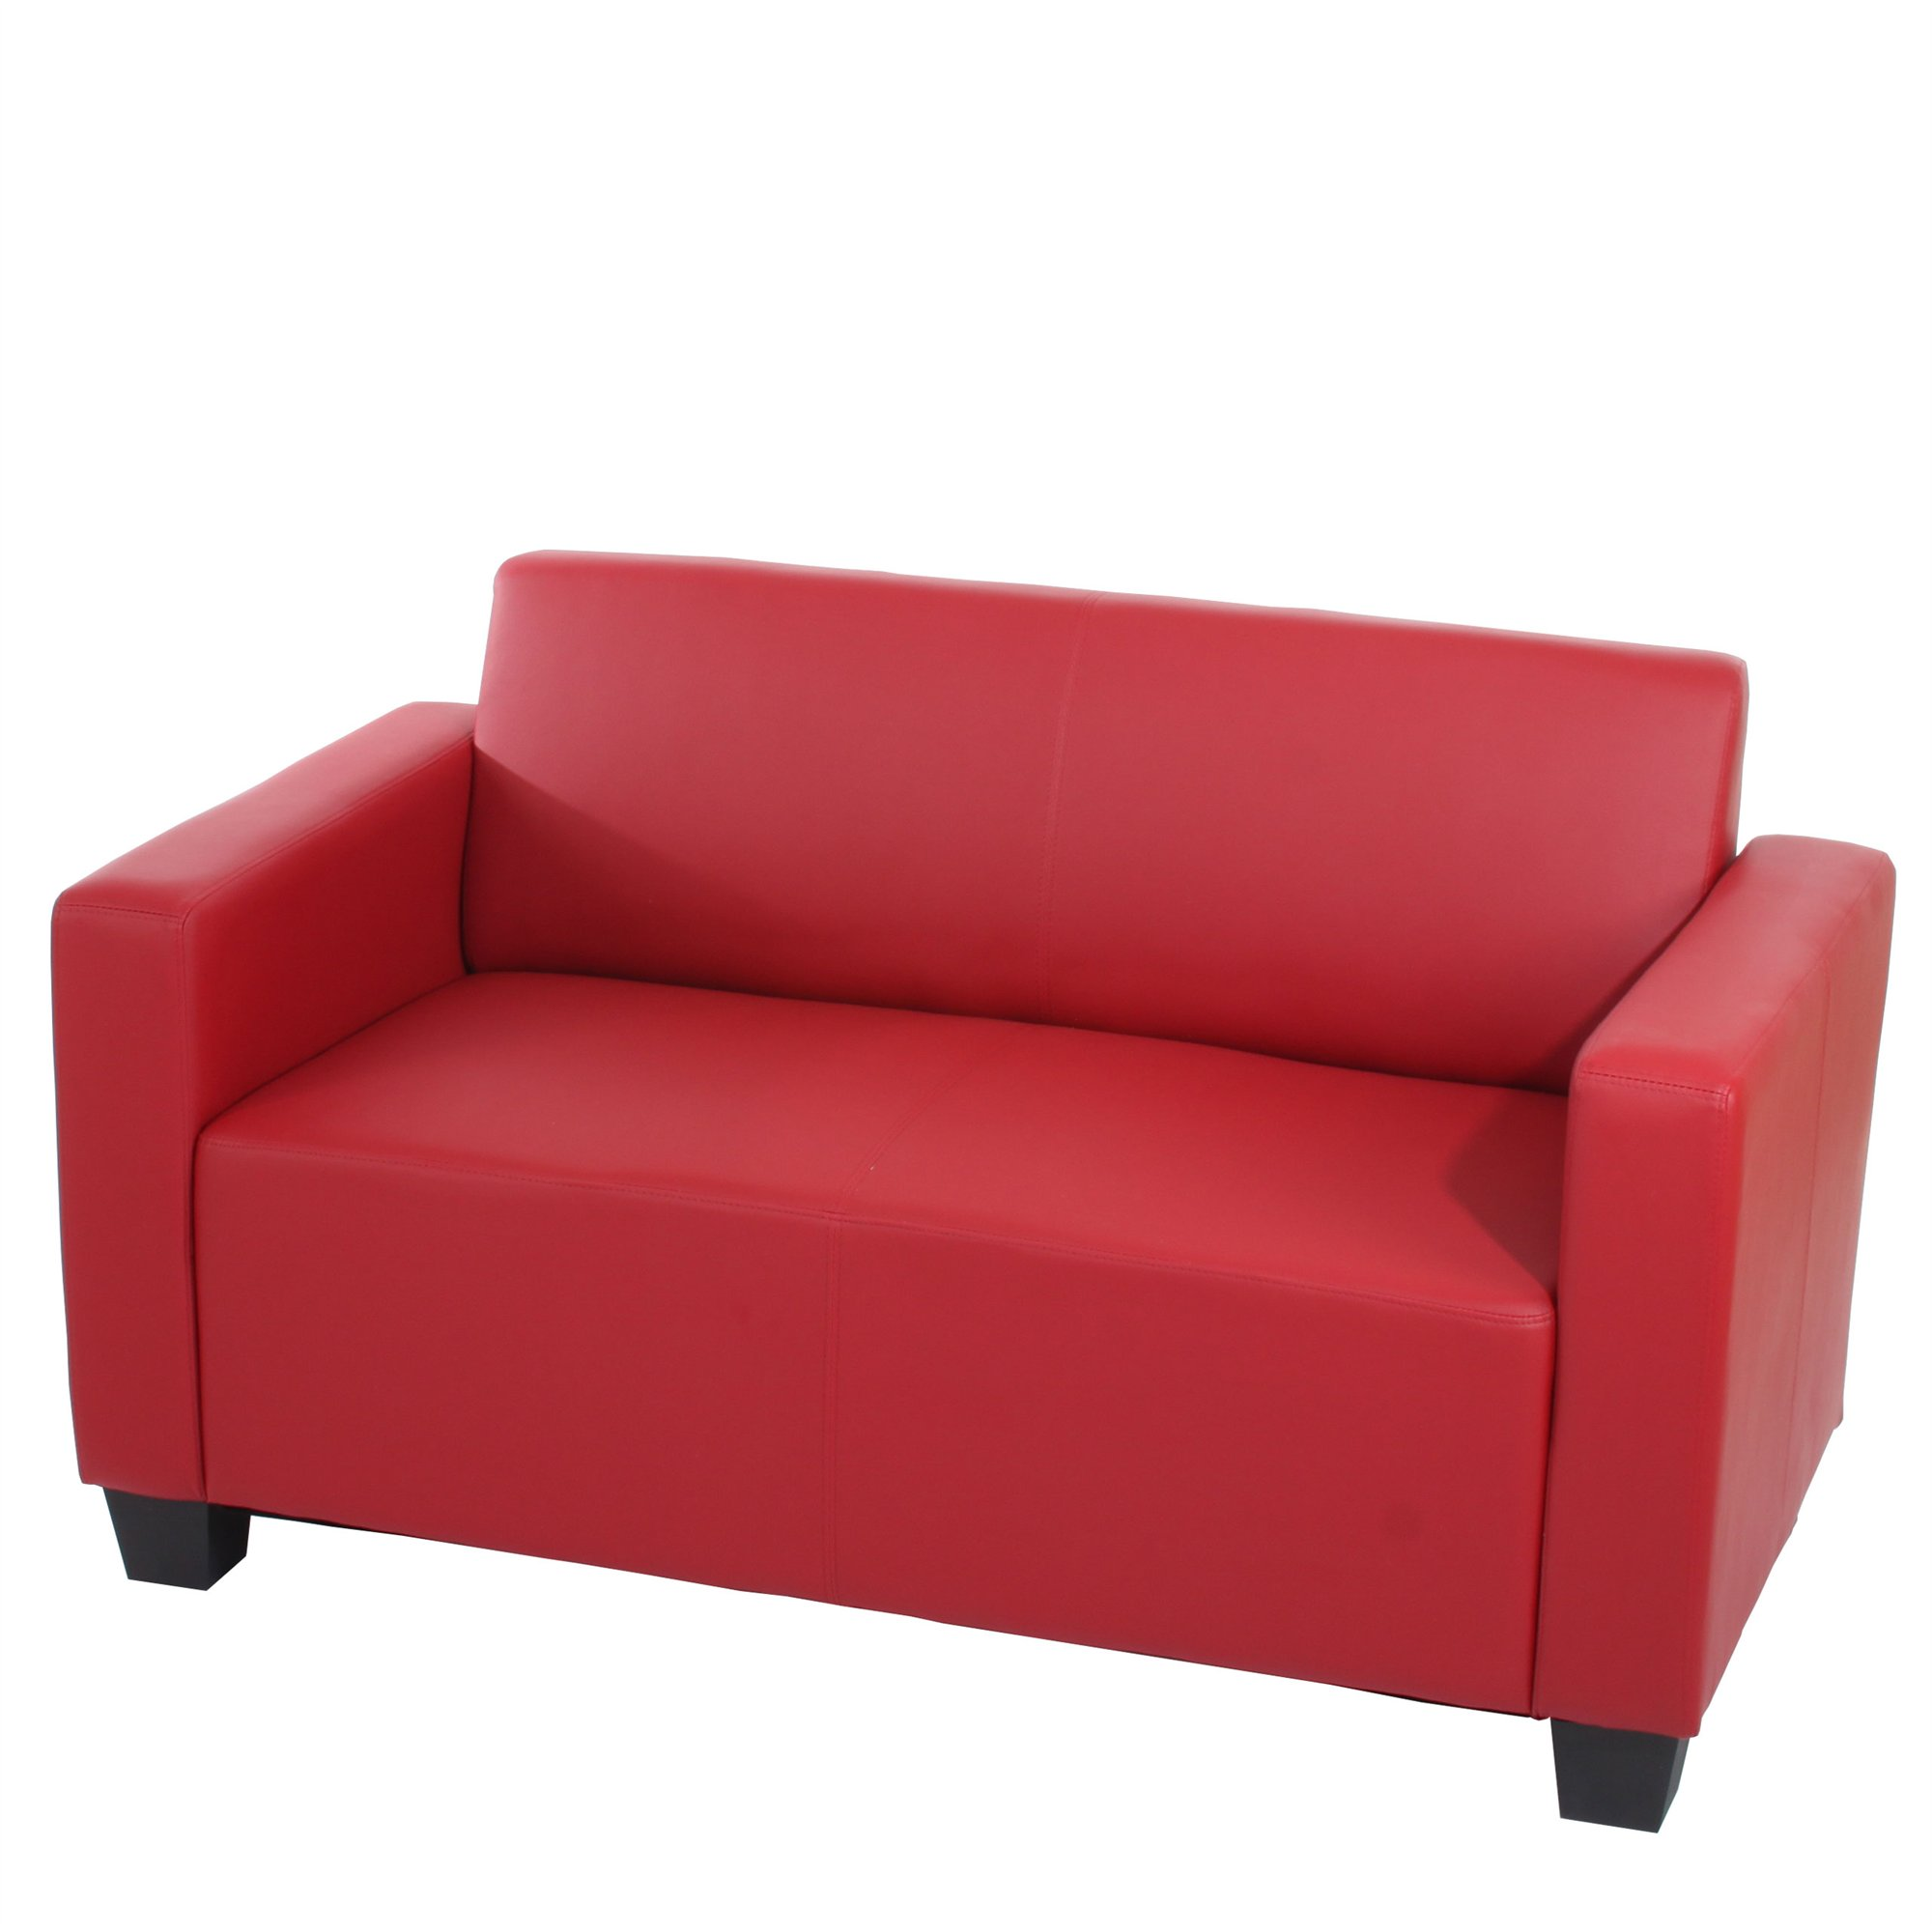 sofa modular lyon de 2 plazas gran acolchado tapizado en piel color rojo. Black Bedroom Furniture Sets. Home Design Ideas